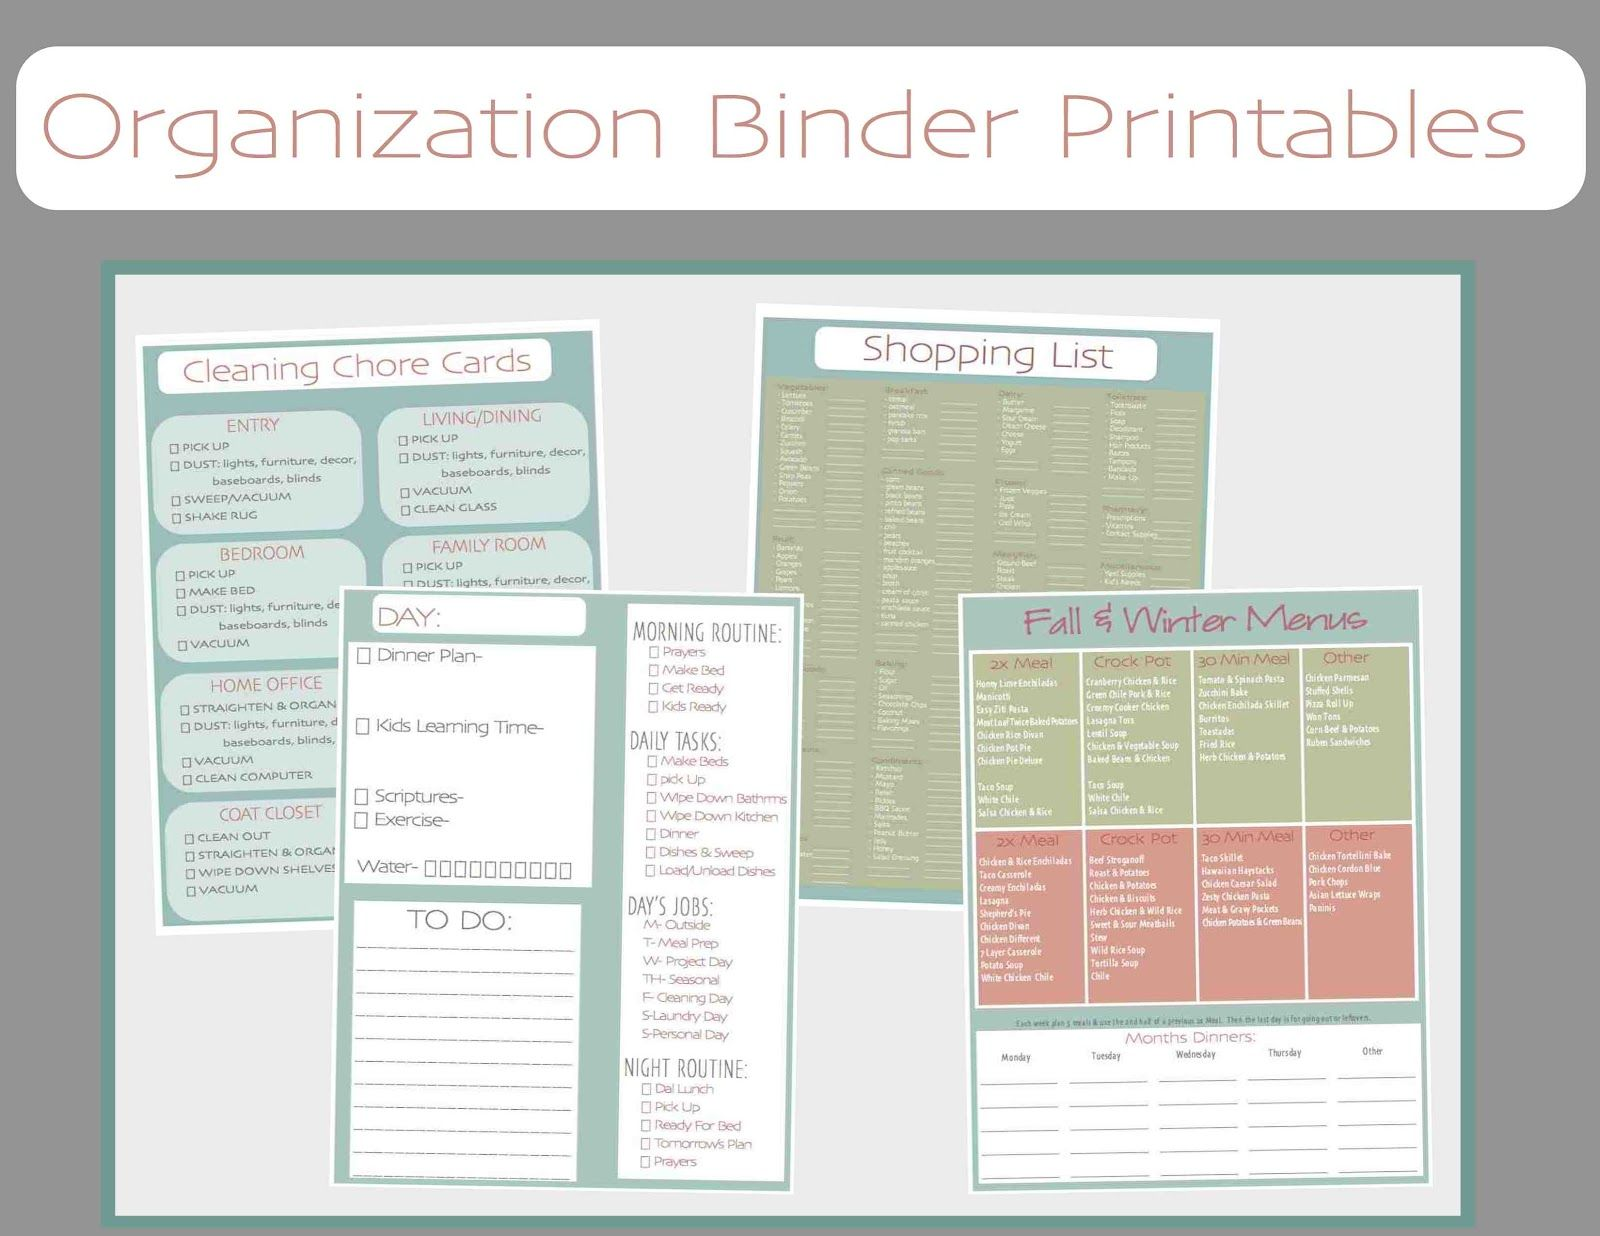 photo regarding Free Printable Household Binder identified as precisely Cute and Basic: Cost-free Printable Loved ones Enterprise